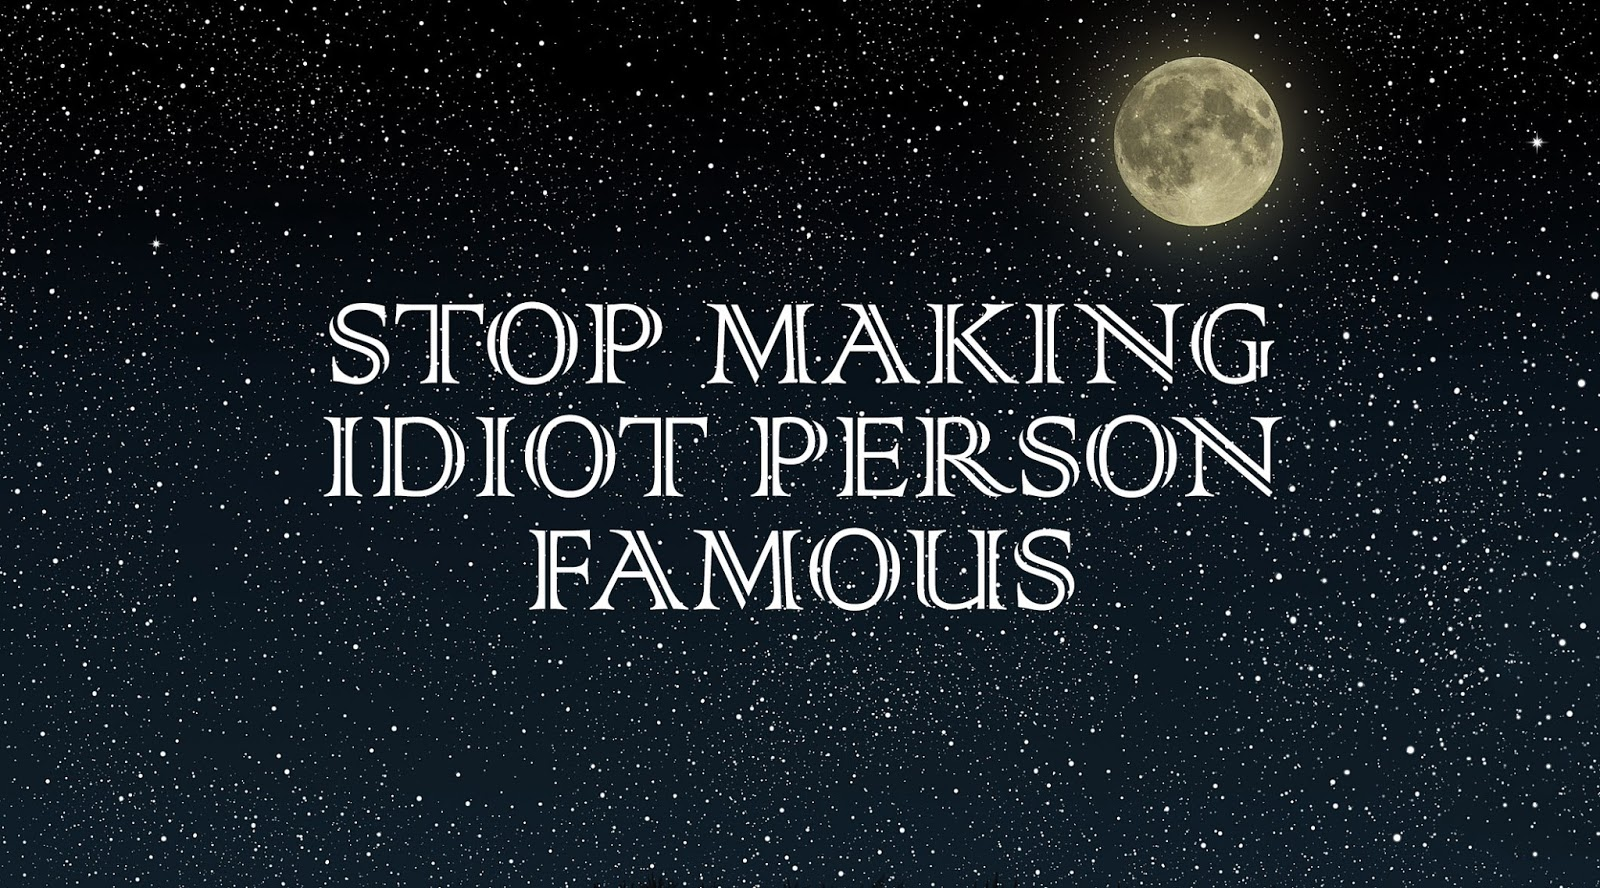 Stop Making Stupid Person Famous